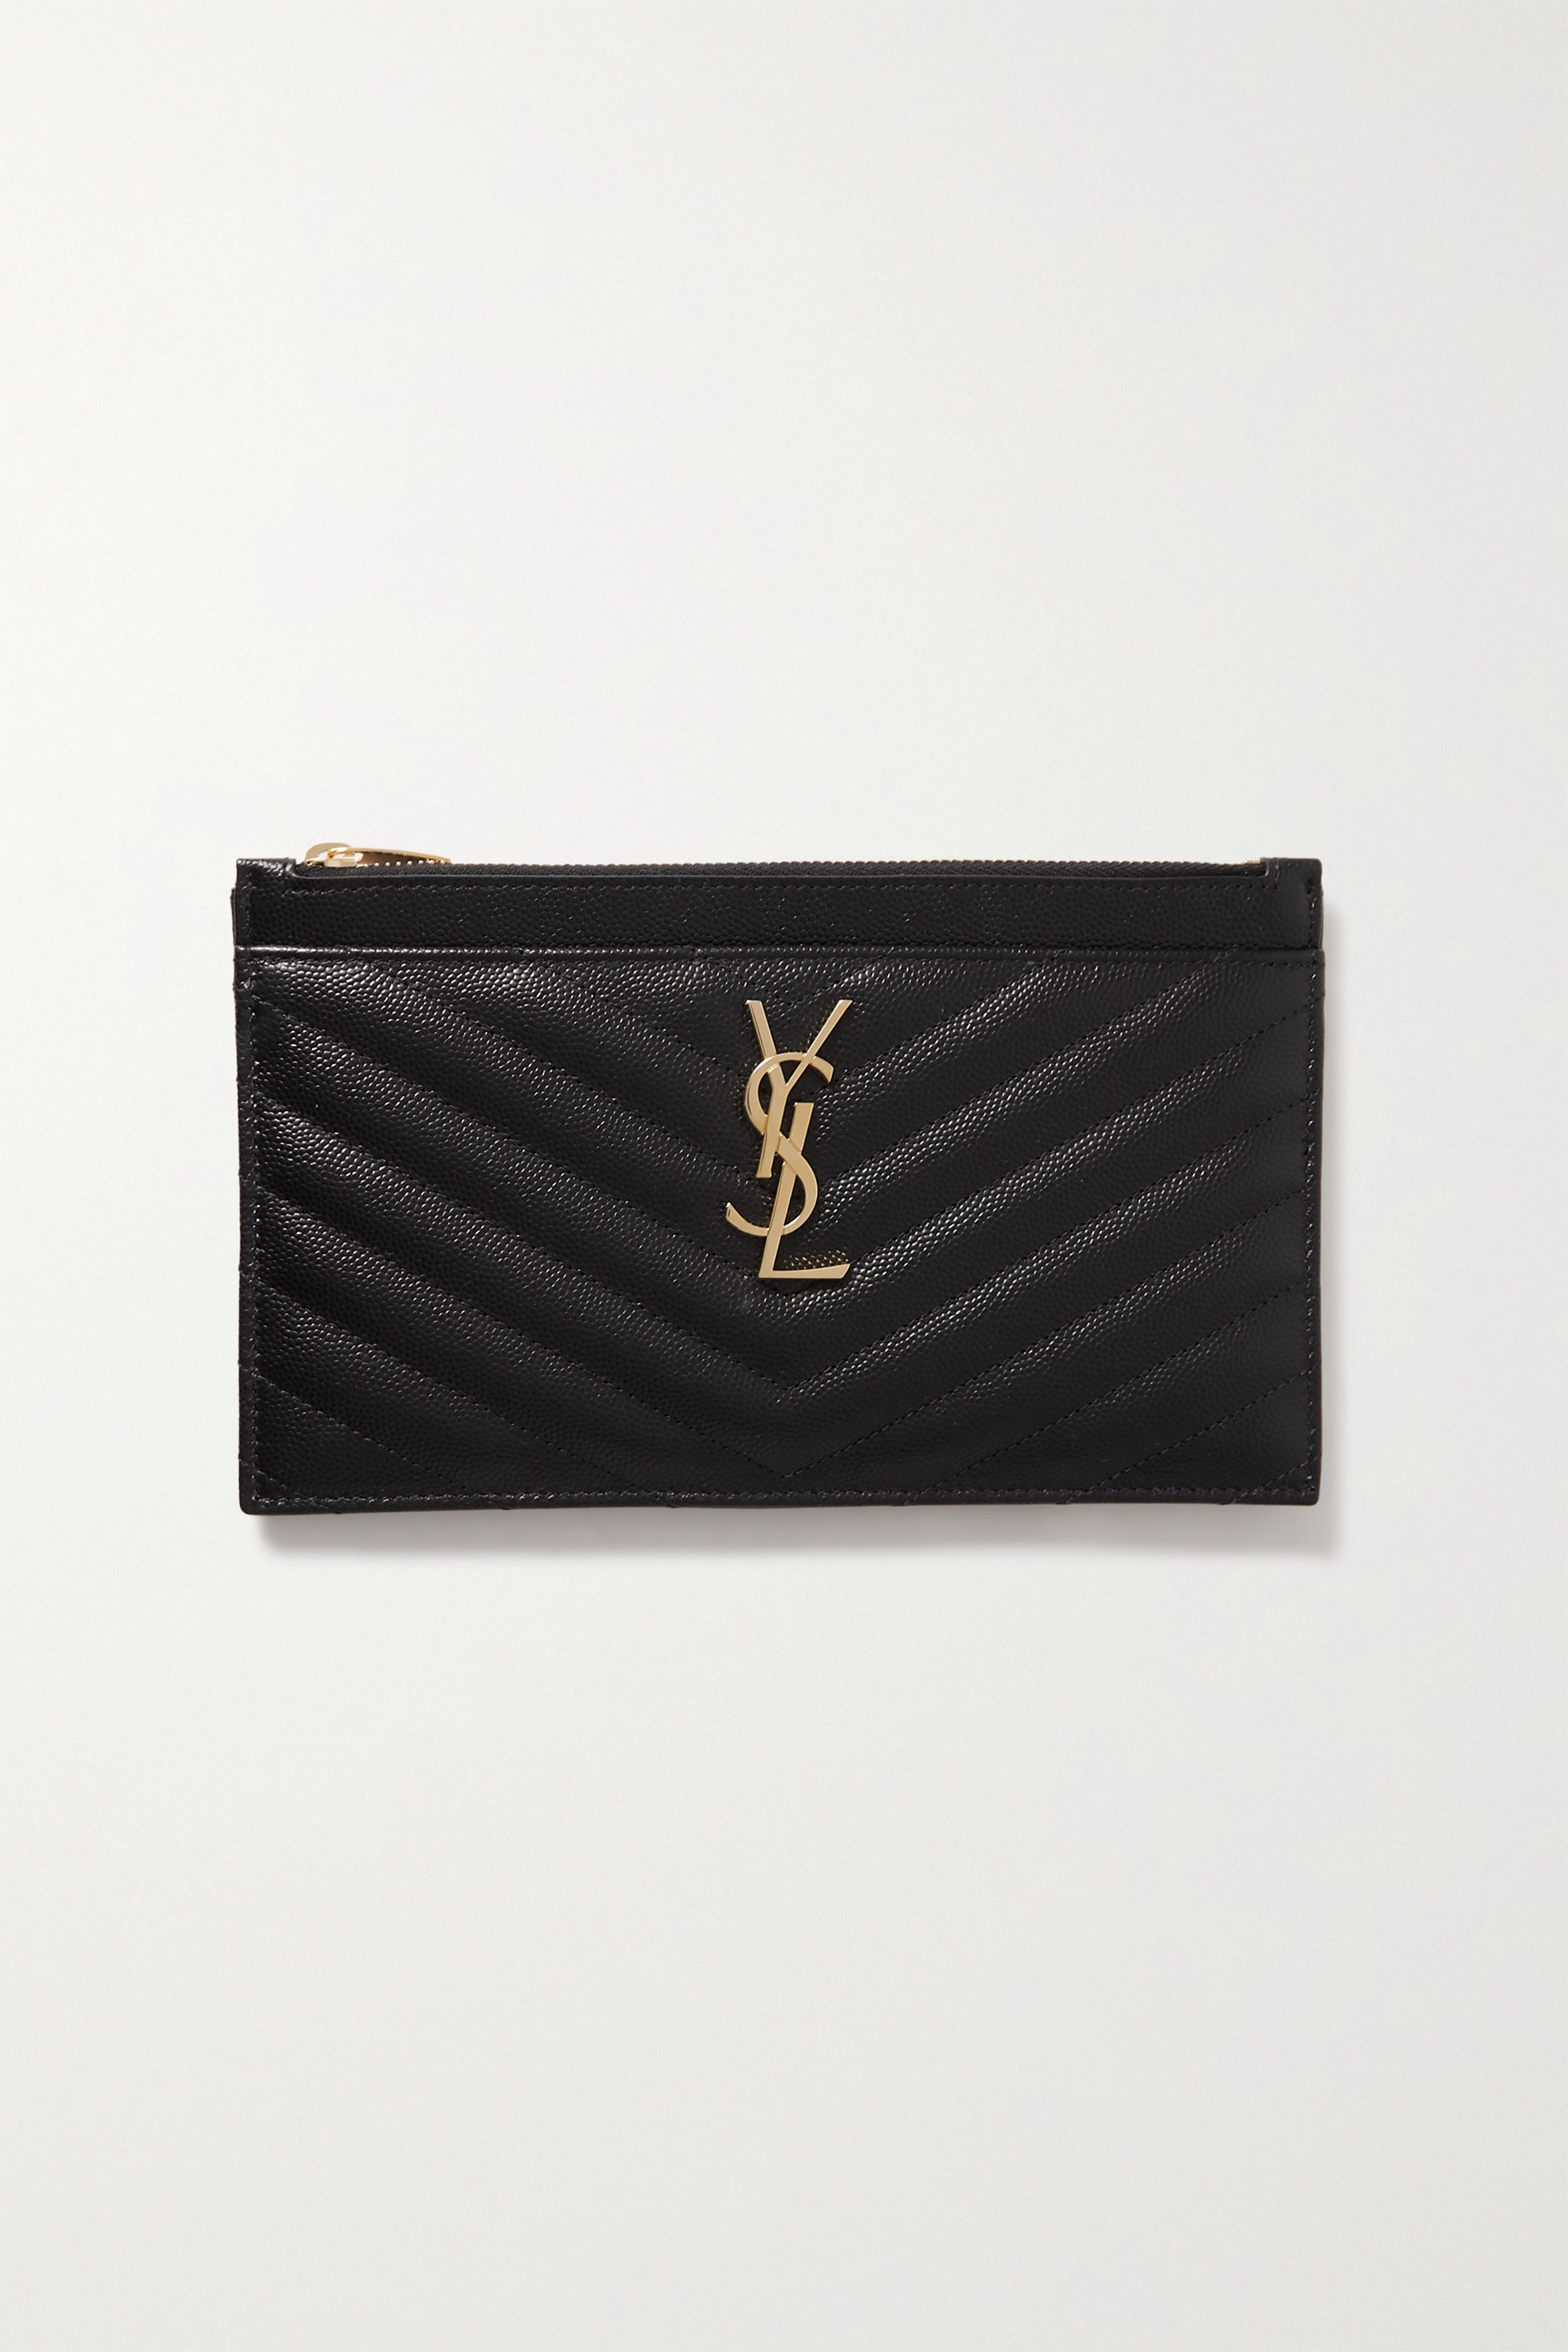 SAINT LAURENT Monogram quilted textured-leather pouch